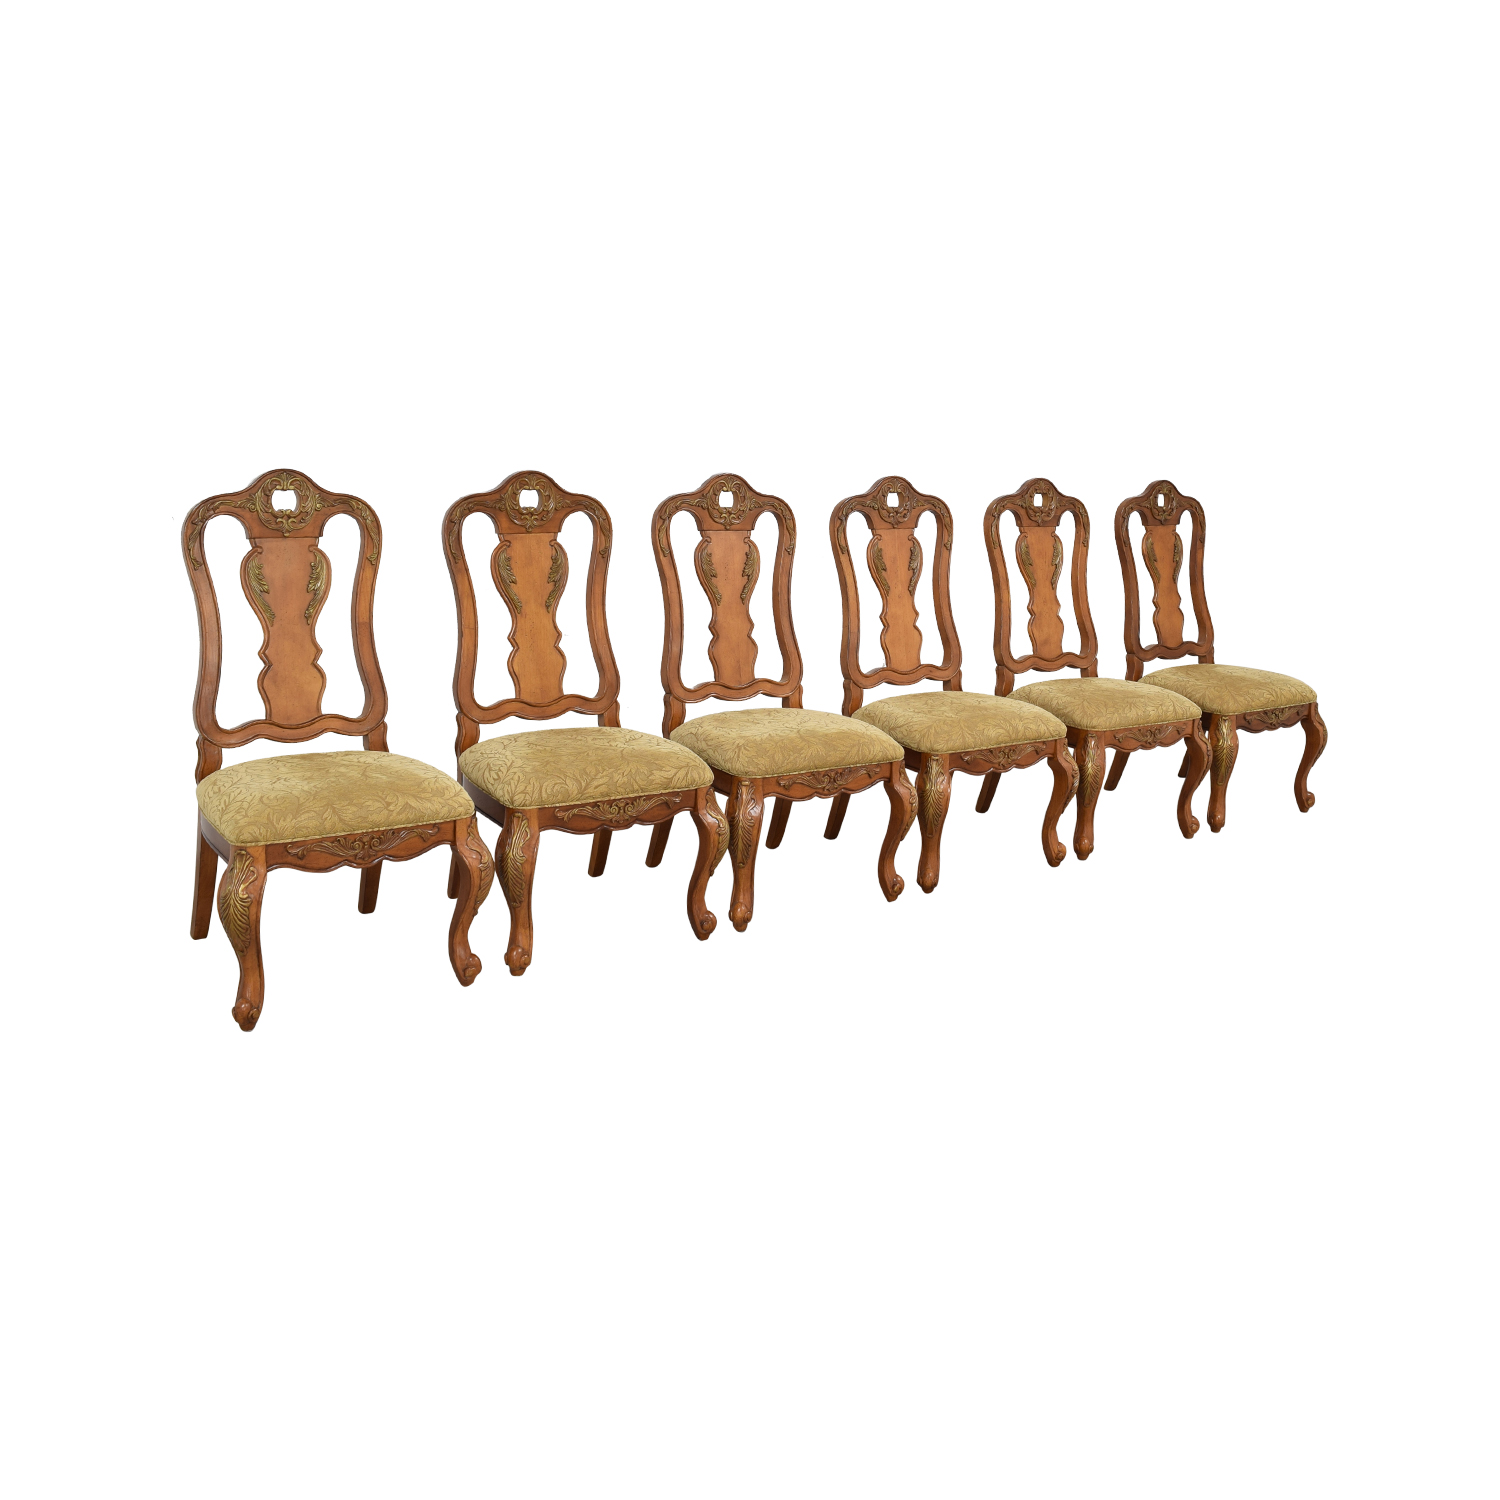 Raymour & Flanigan Raymour & Flanigan Carved Dining Chairs nj